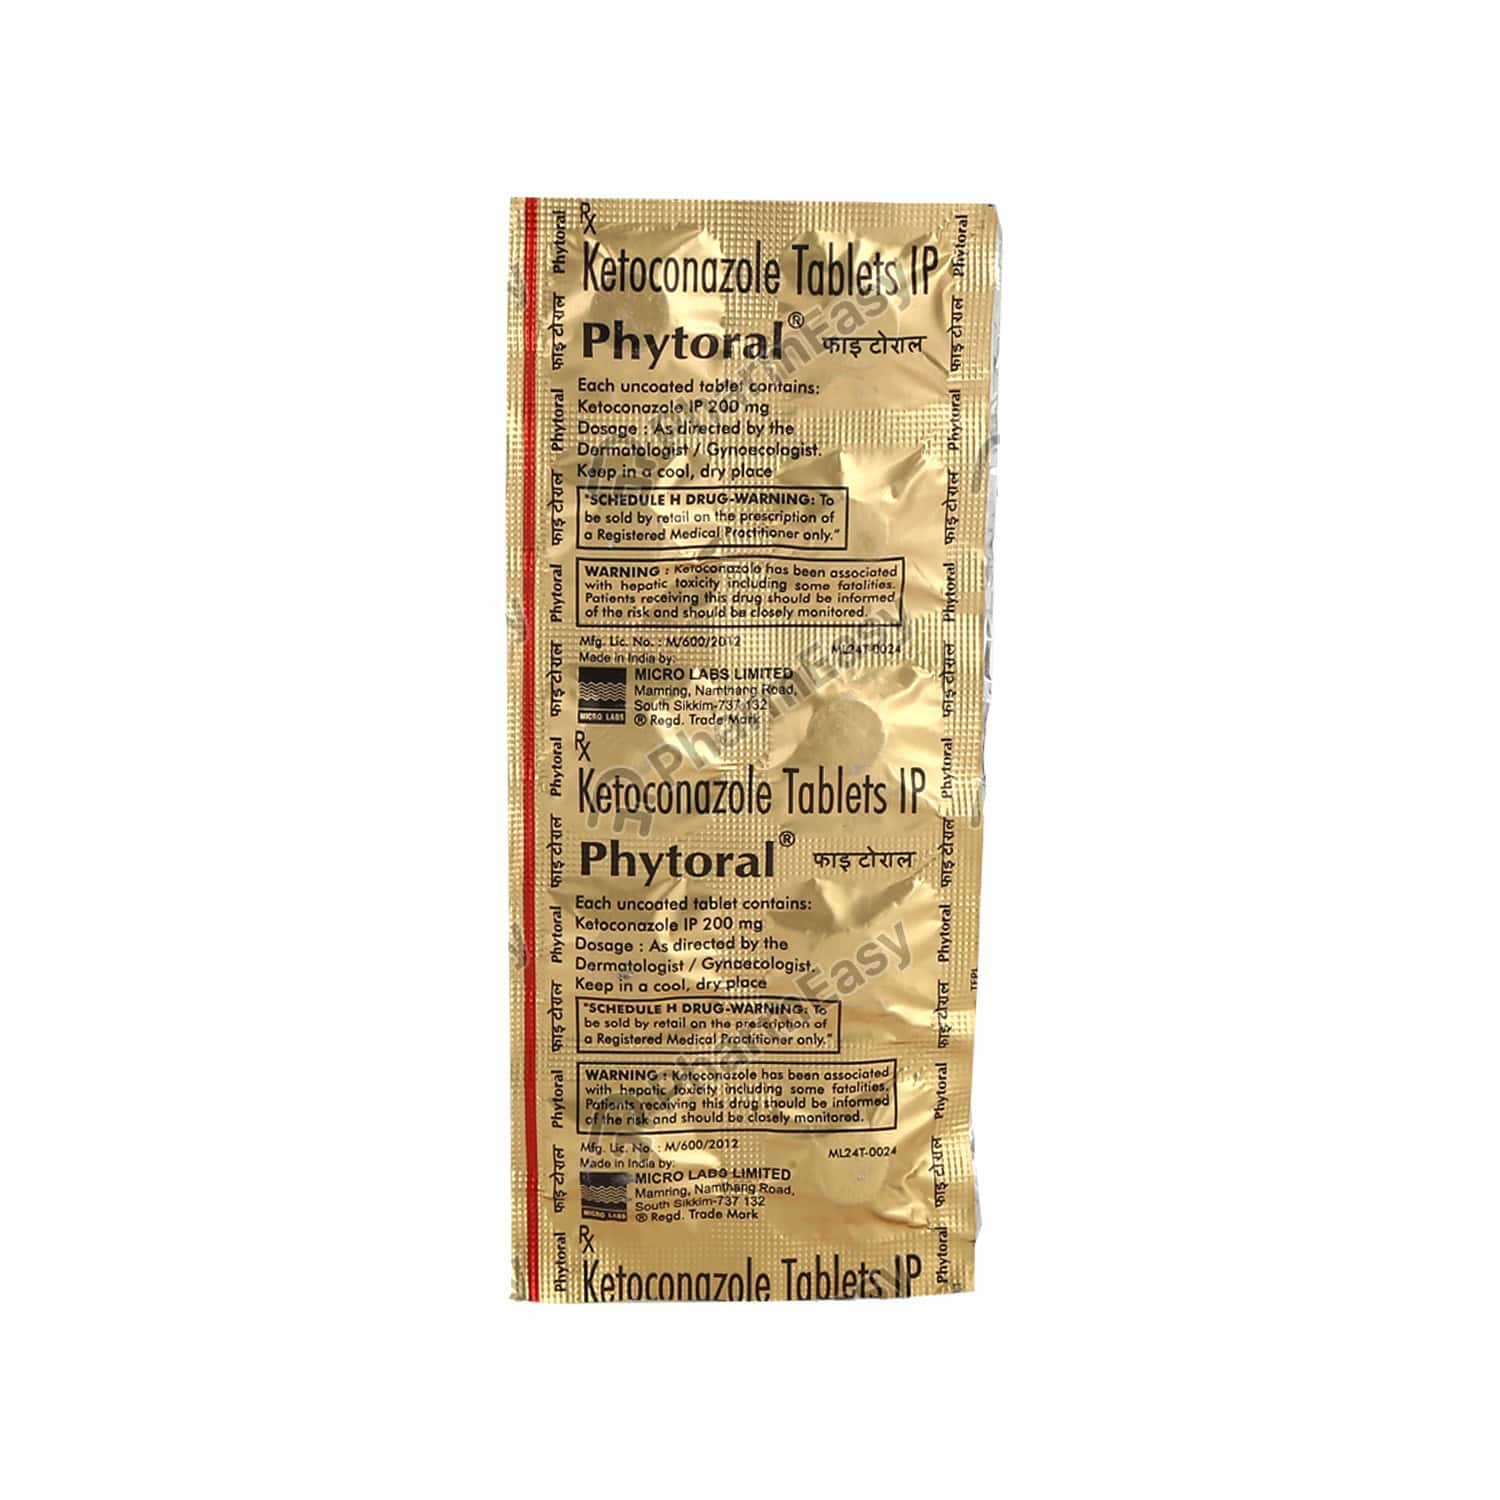 Phytoral 200mg Strip Of 10 Tablets